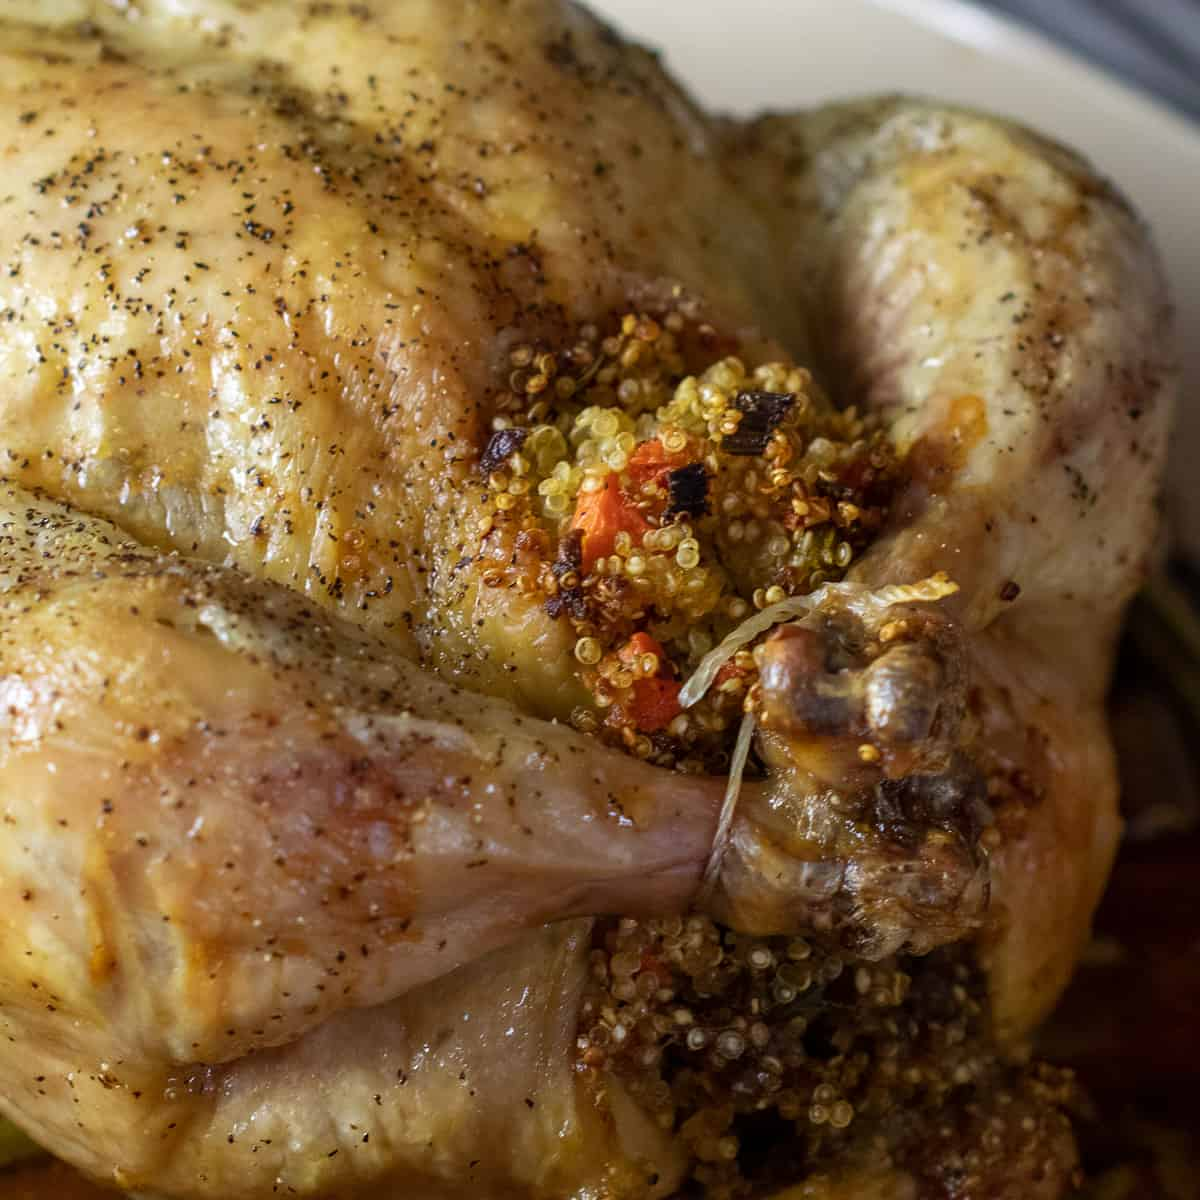 A close up picture of the stuffing and legs of the chicken.